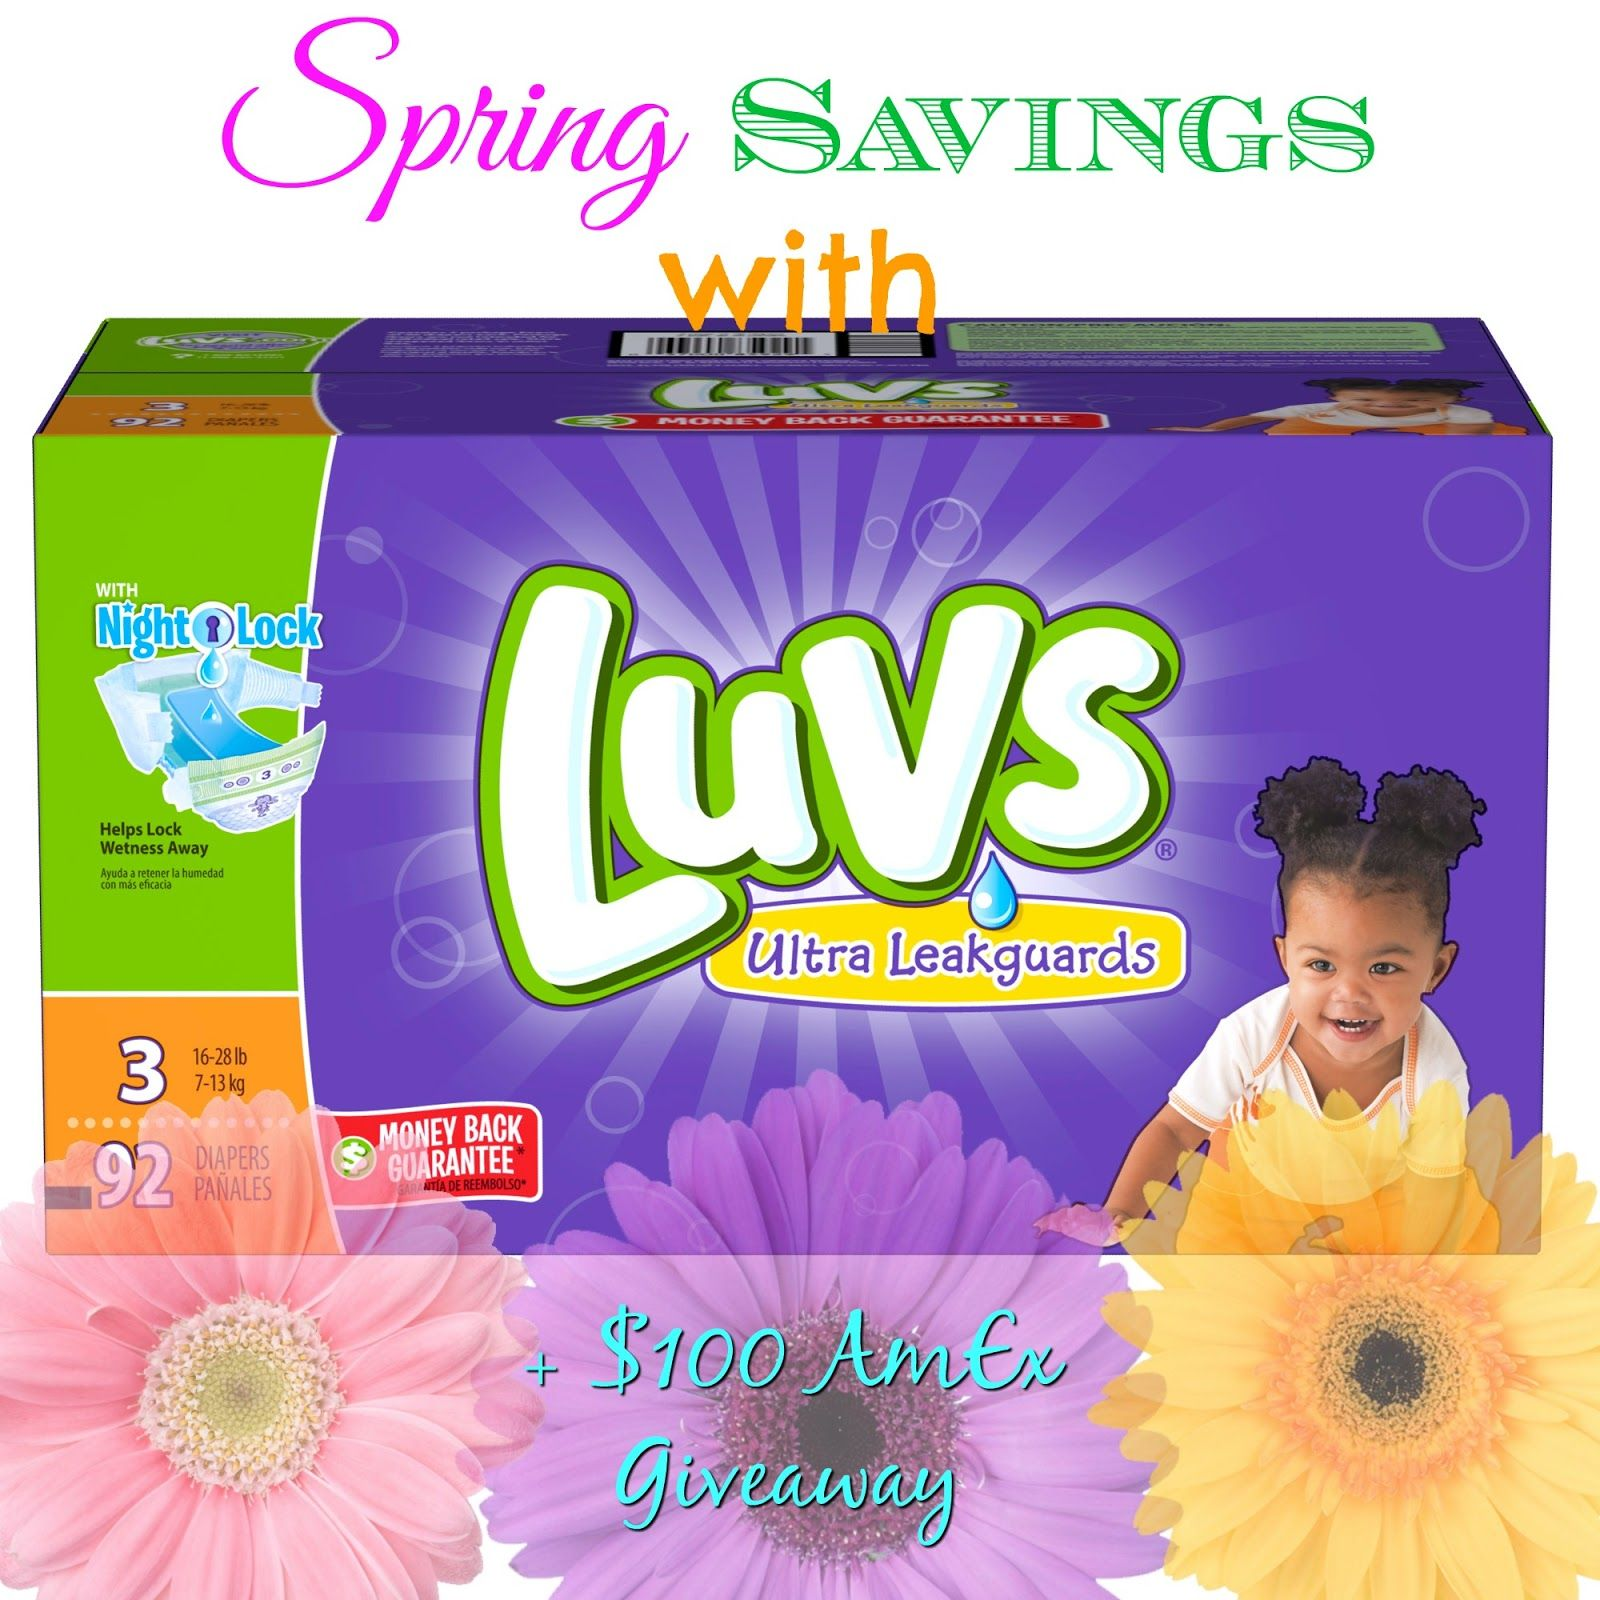 Spring Savings With Luvs 100 Gift Card Giveaway Sharetheluv Gift Card Giveaway Spring Savings Gift Card